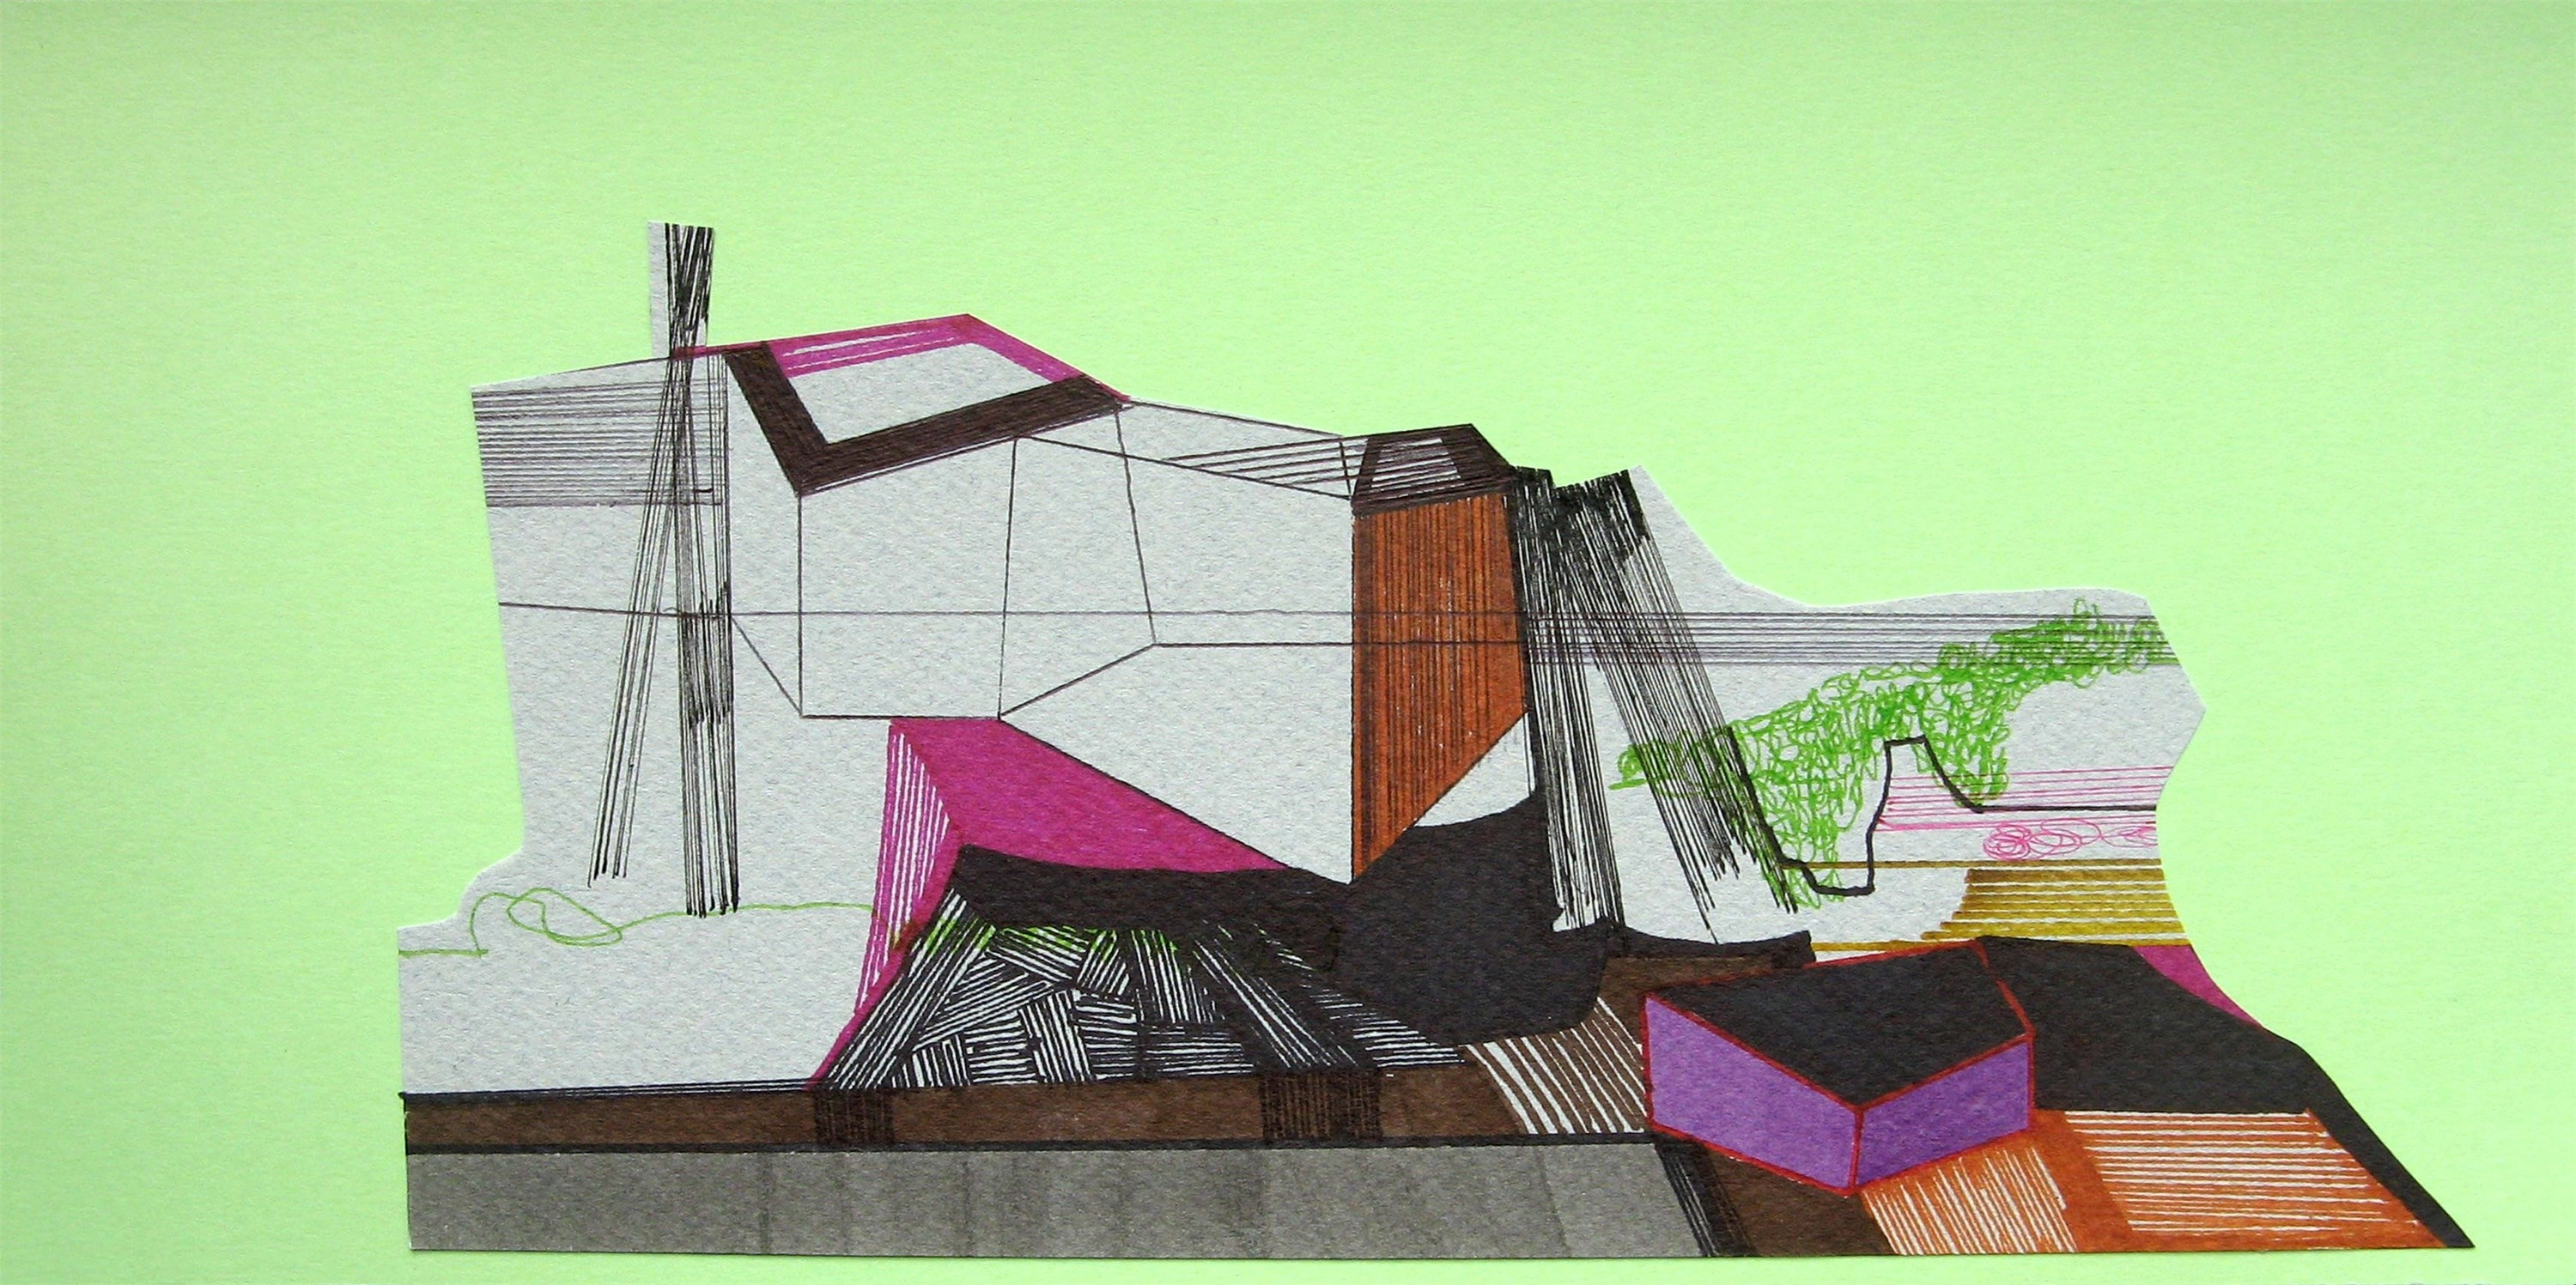 Casa de partida #18, original  Collage Drawing and Illustration by Ana Pais Oliveira